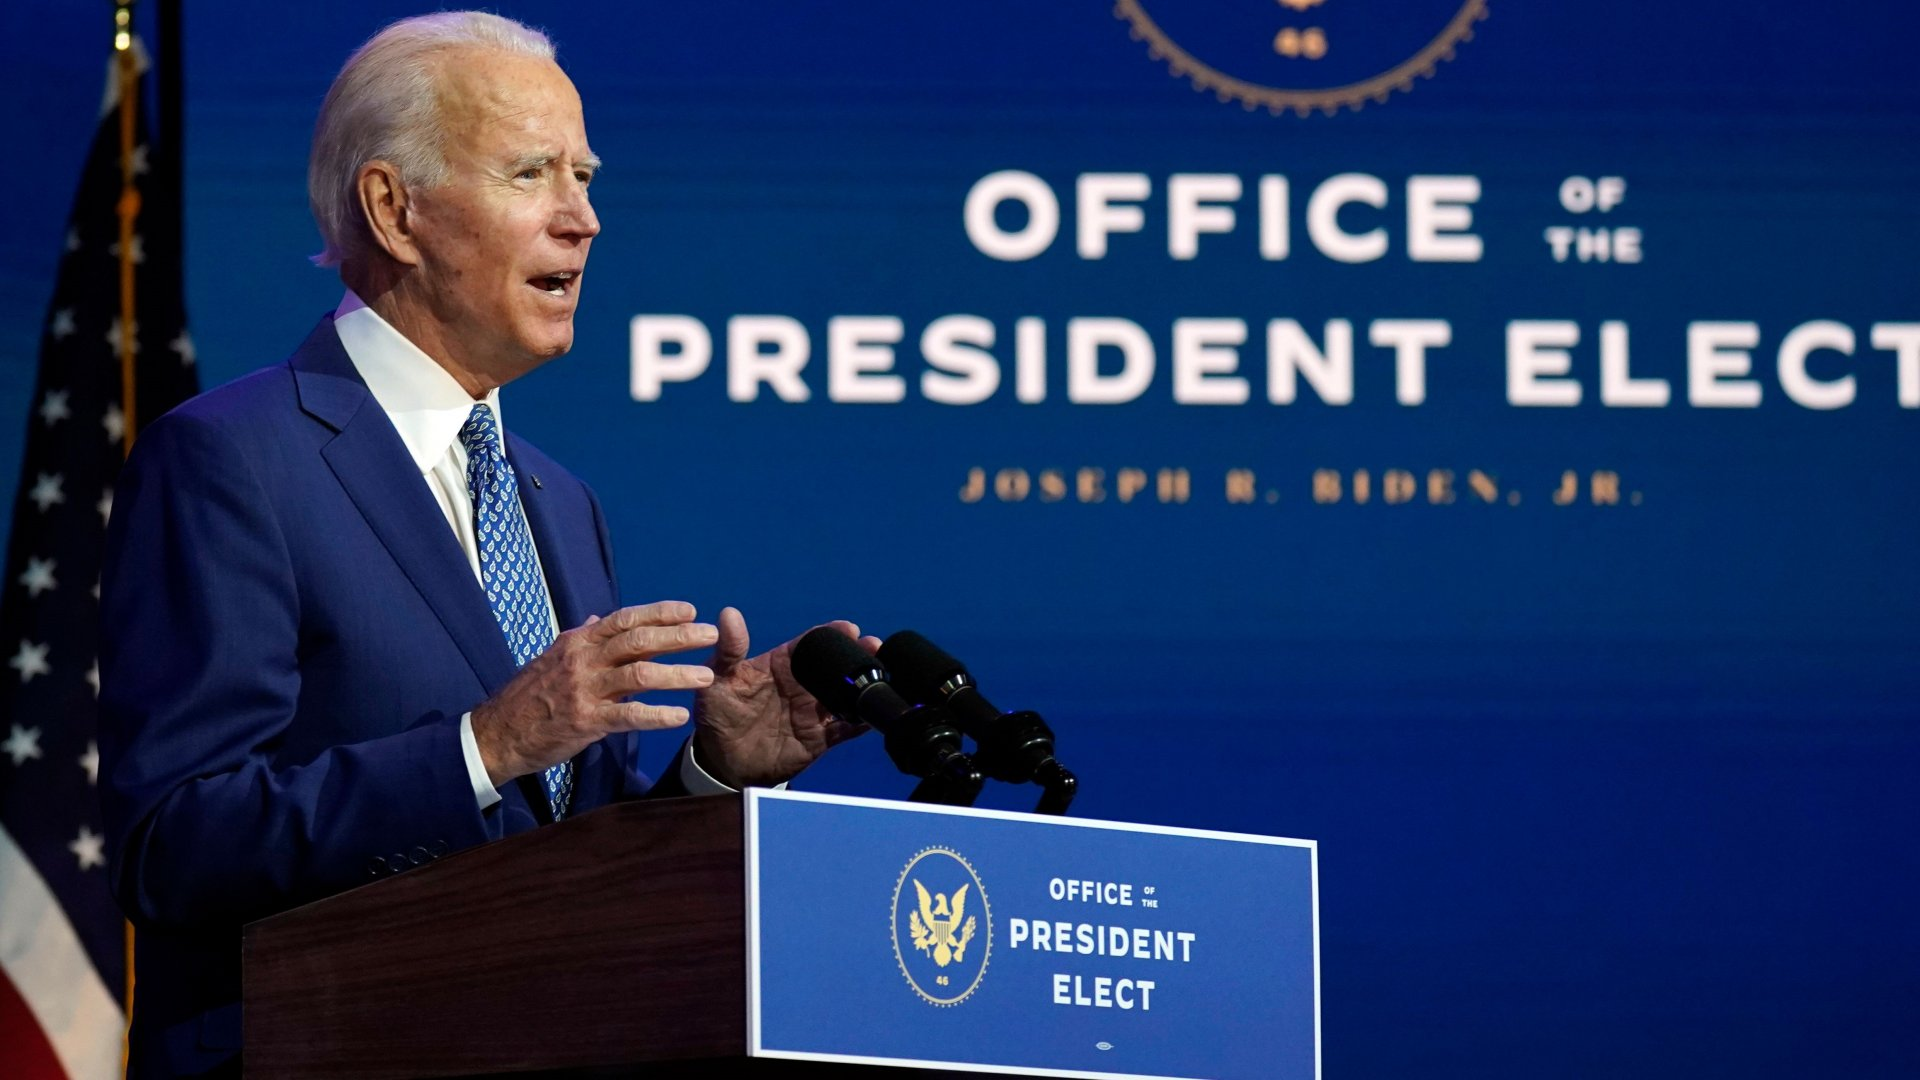 Mandatory Credit: Photo by Carolyn Kaster/AP/Shutterstock (11009100p)President-elect Joe Biden speaks, at The Queen theater in Wilmington, DelBiden, Wilmington, United States - 09 Nov 2020.